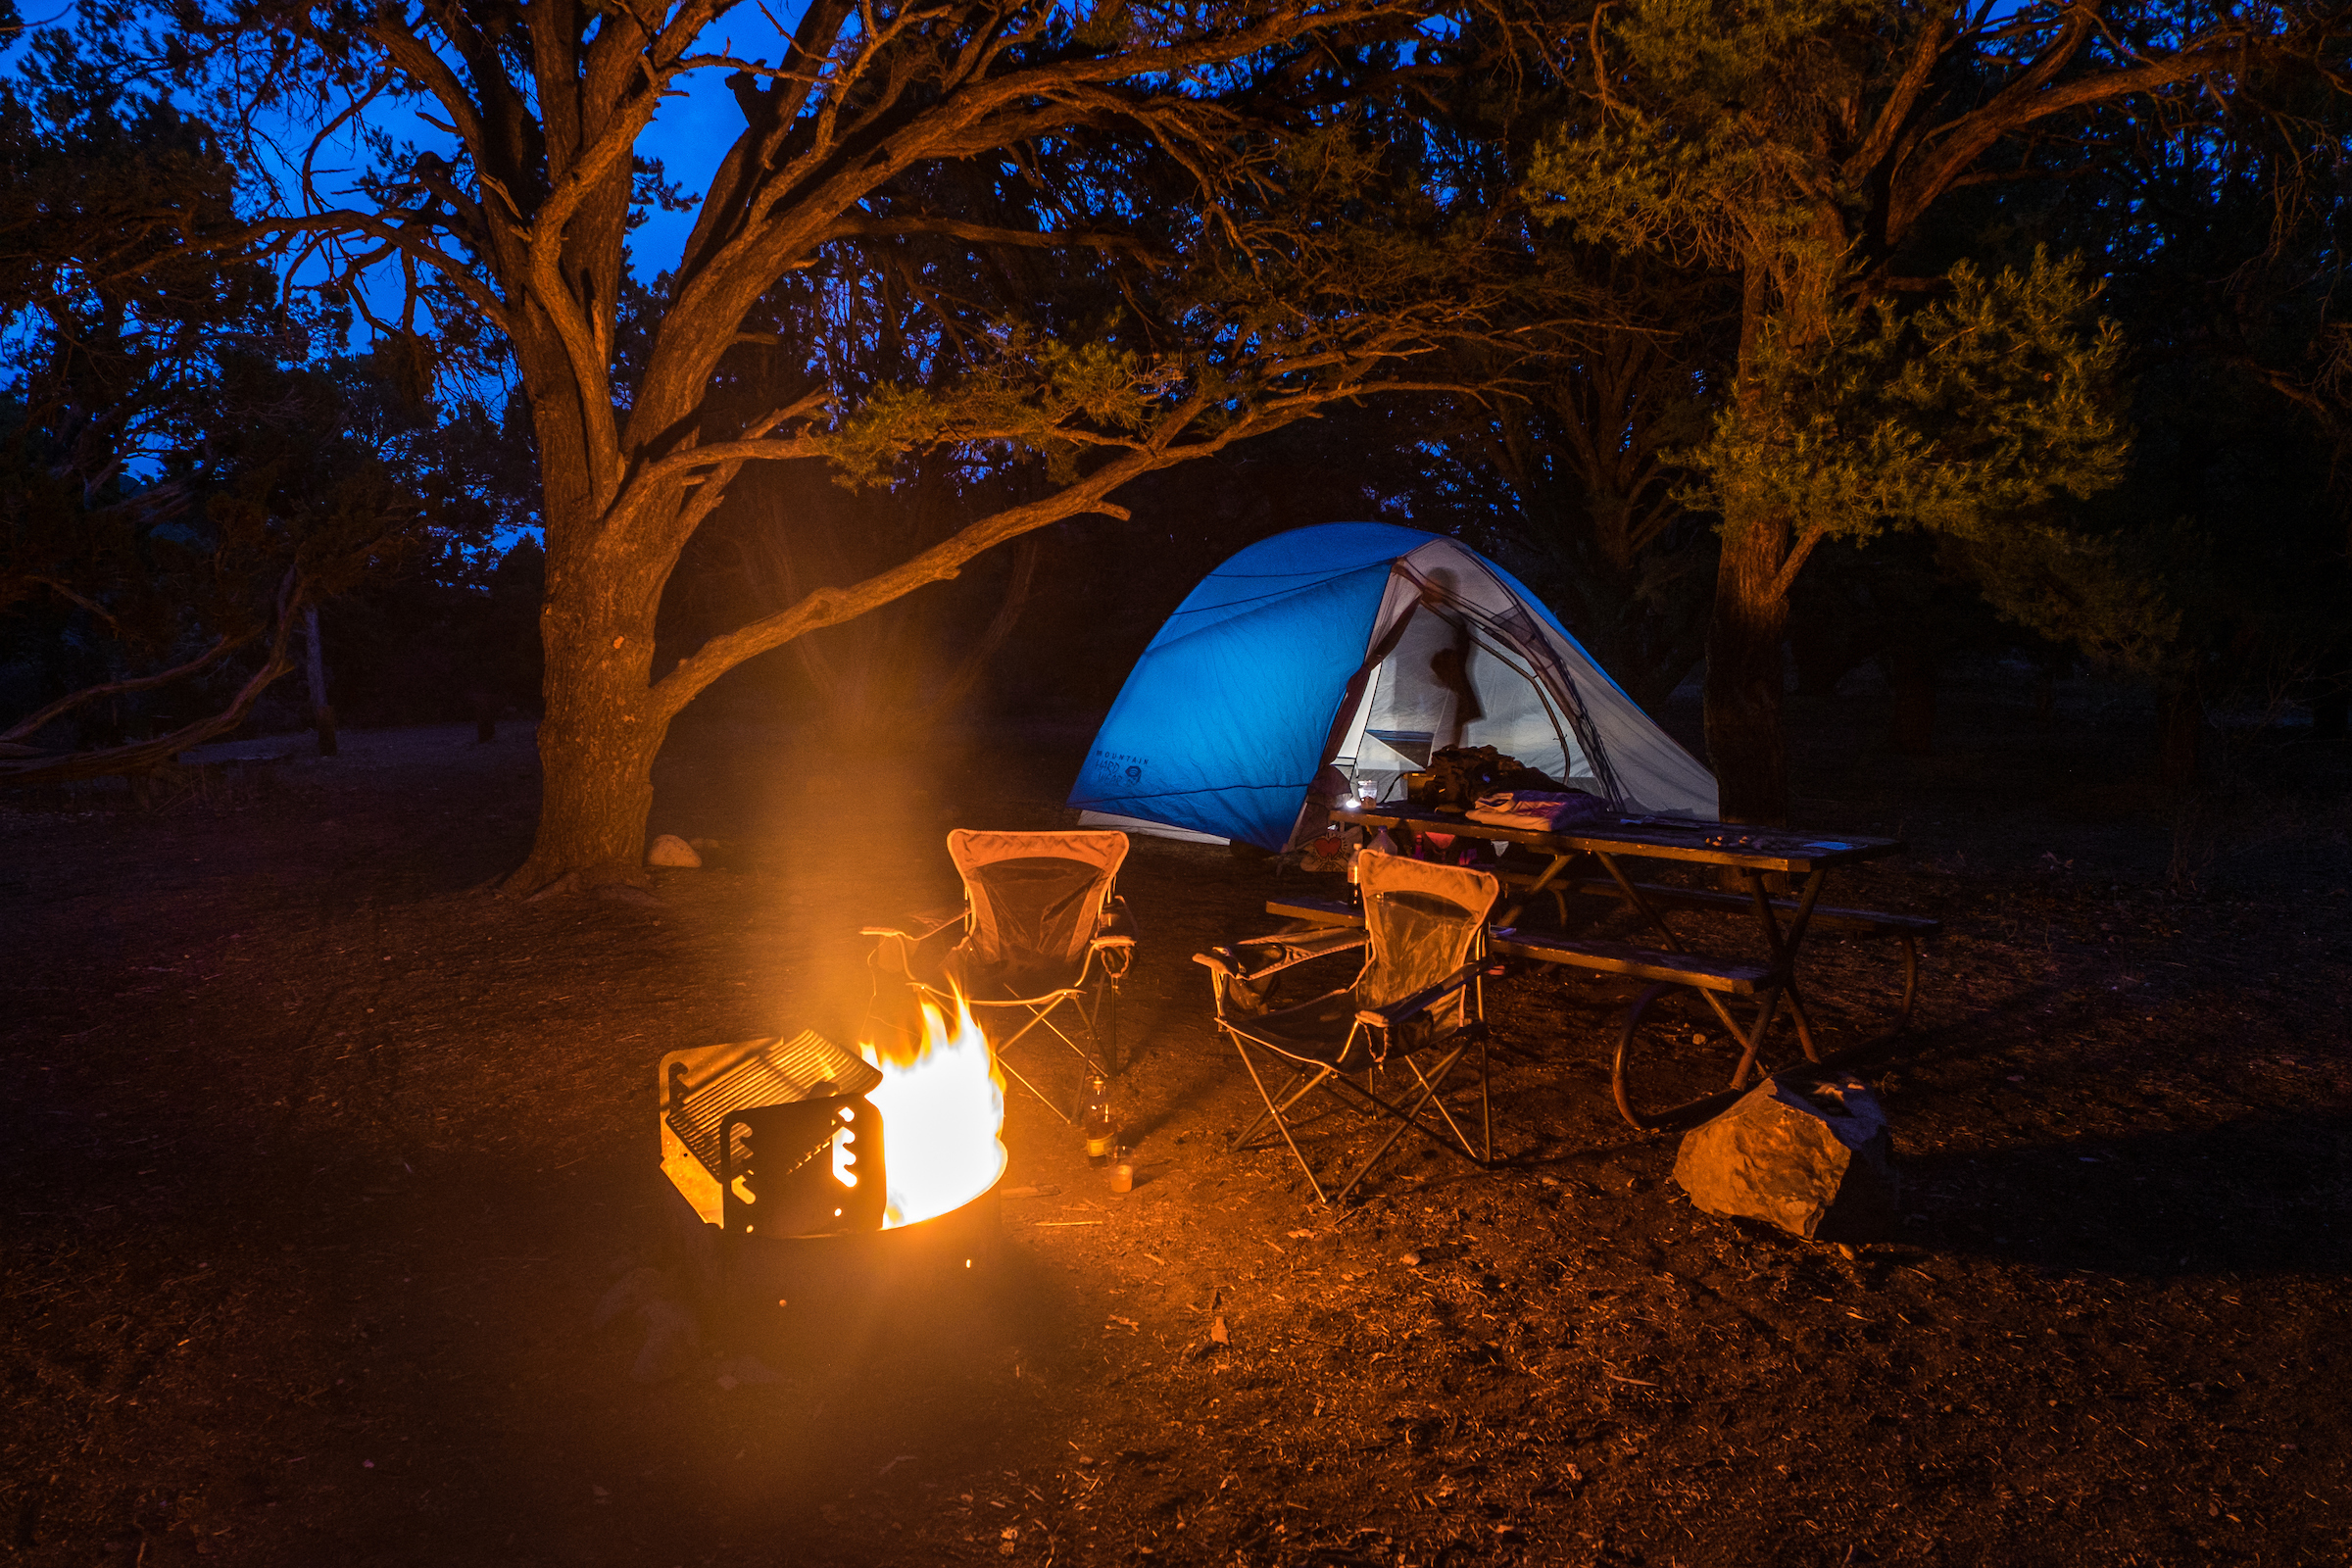 Our campsite nestled in the juniper-pinyon trees at the North Rim Campground.